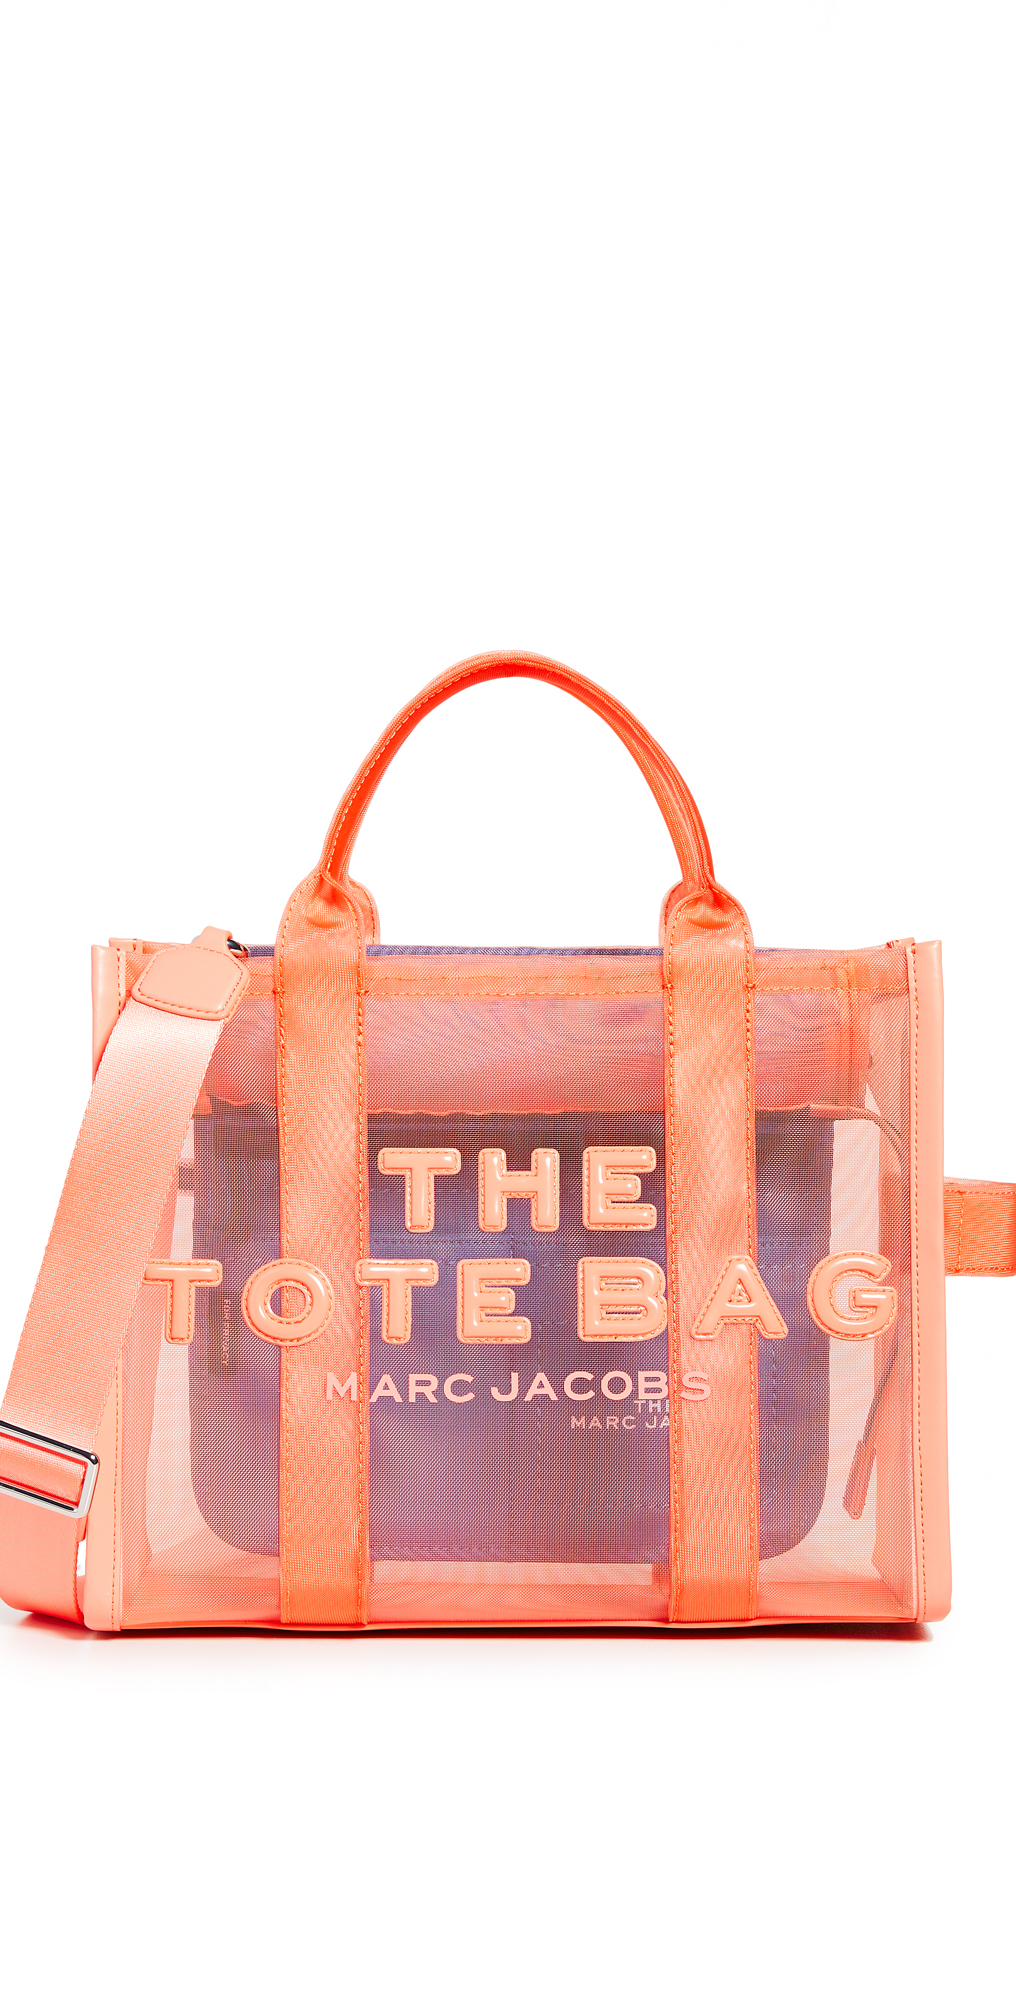 The Marc Jacobs Totes SMALL TRAVELER TOTE